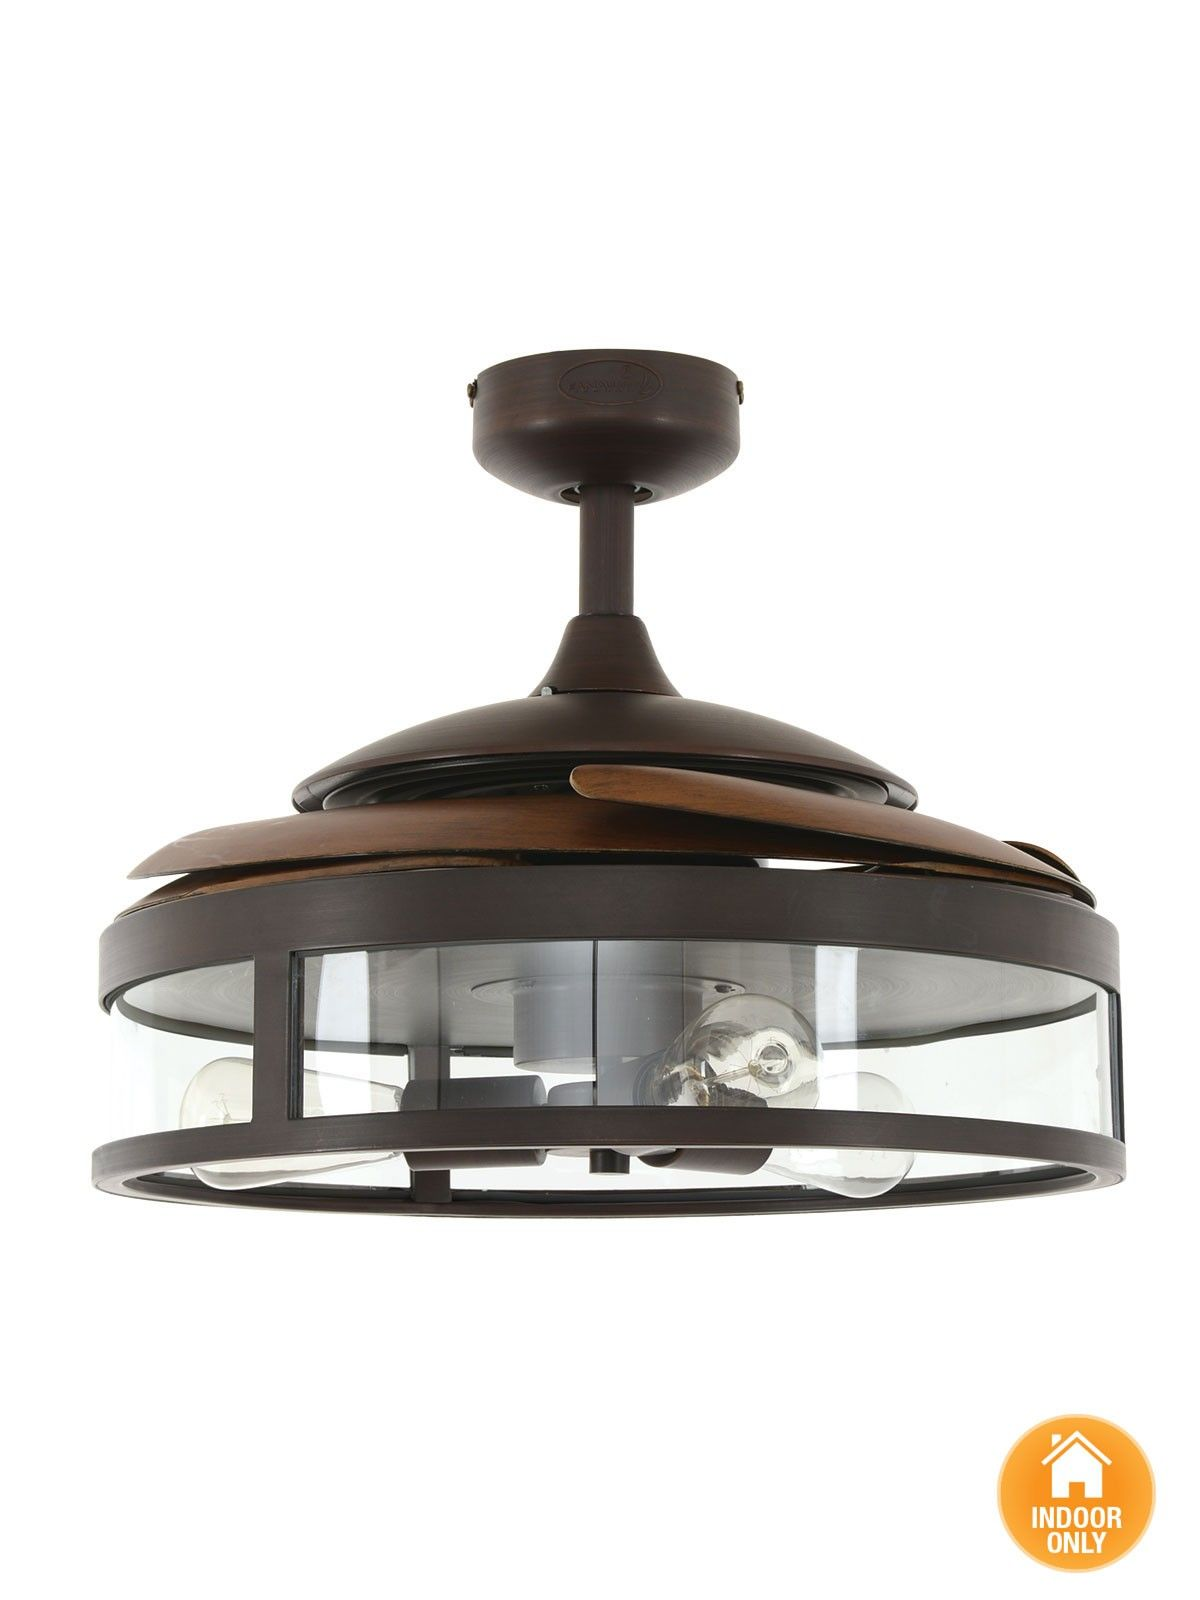 Amazing Fanaway Classic ORB Ceiling Fan With Clear Retractable Blades And Light